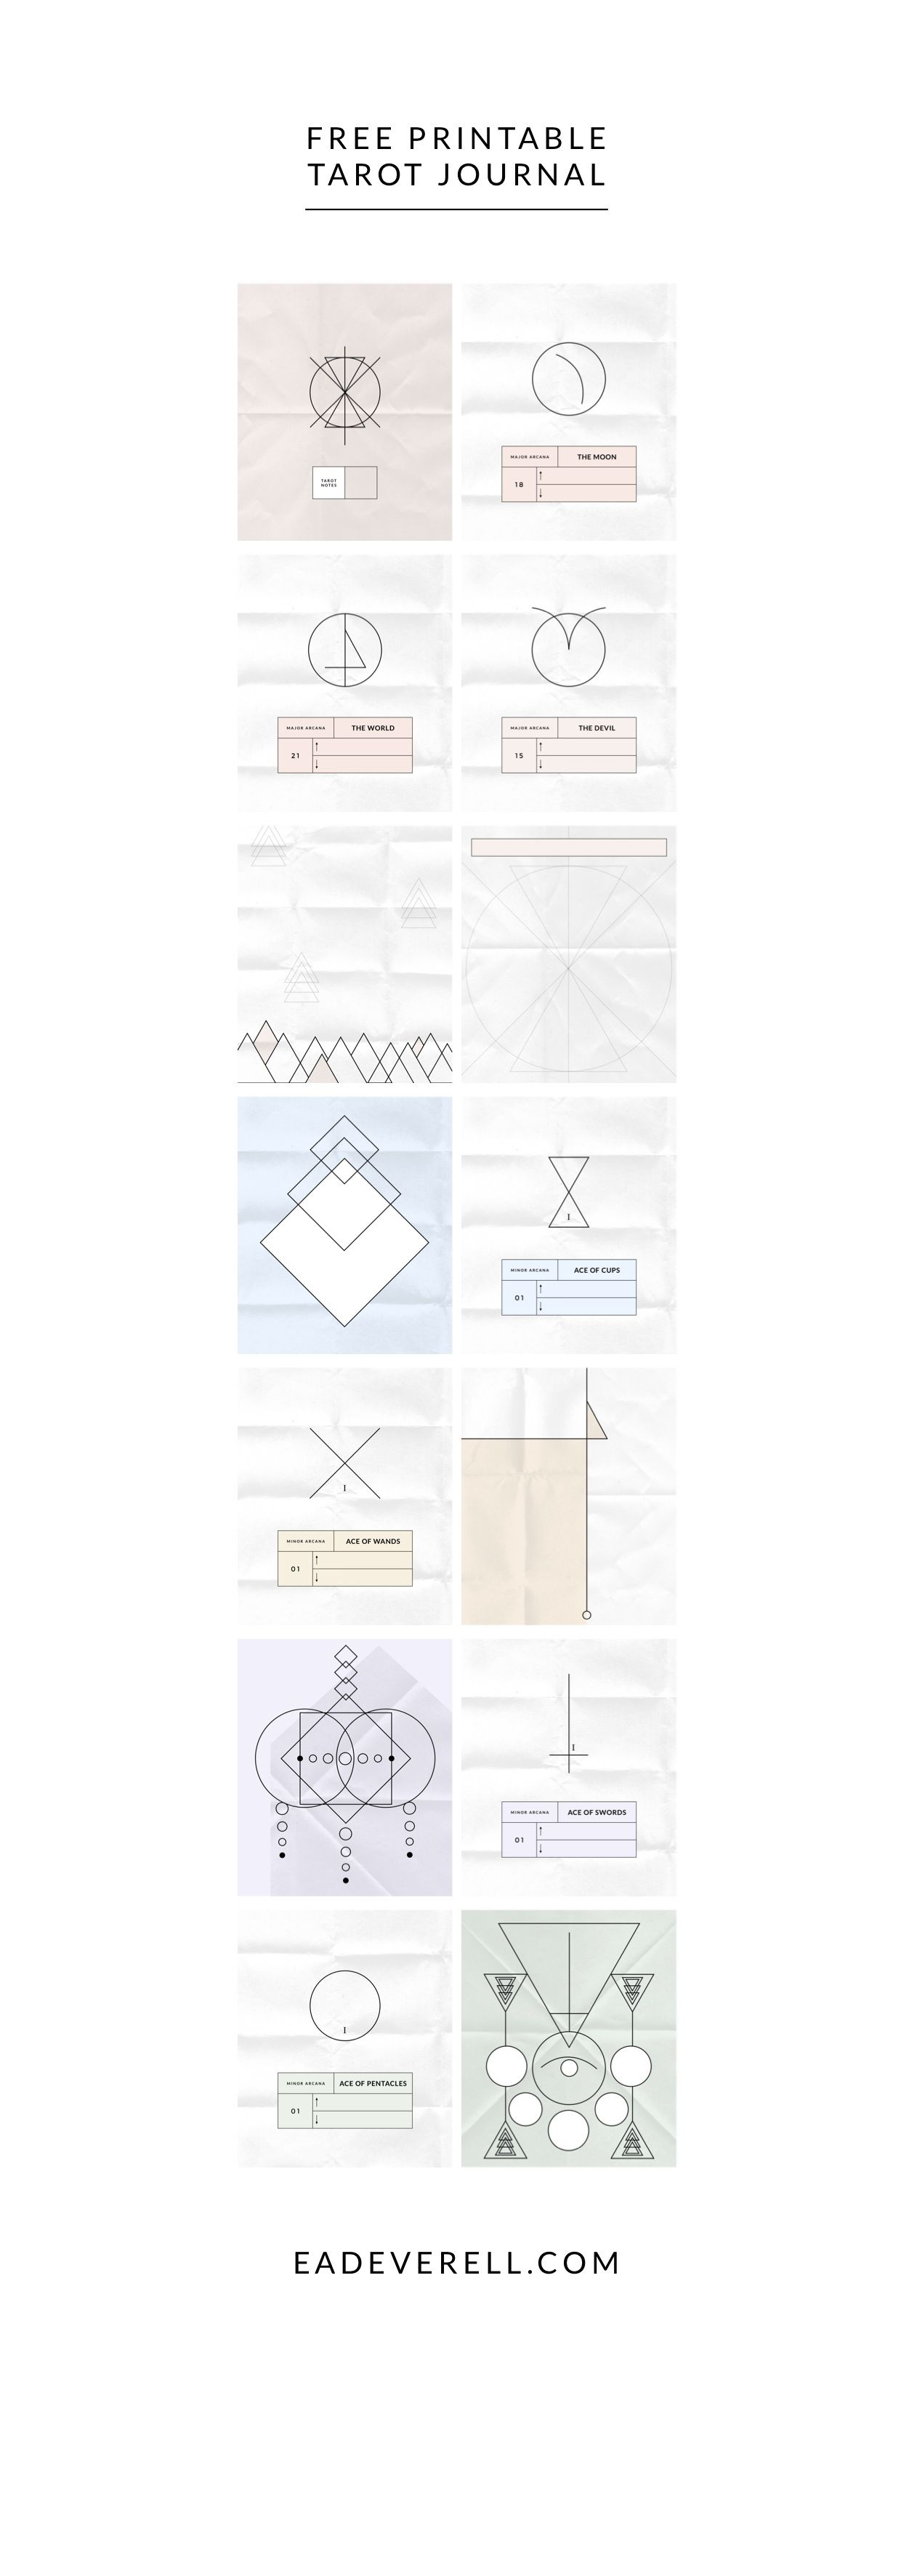 Modern Tarot Journal - free printable journal to help you explore the meanings of the major and minor arcana cards